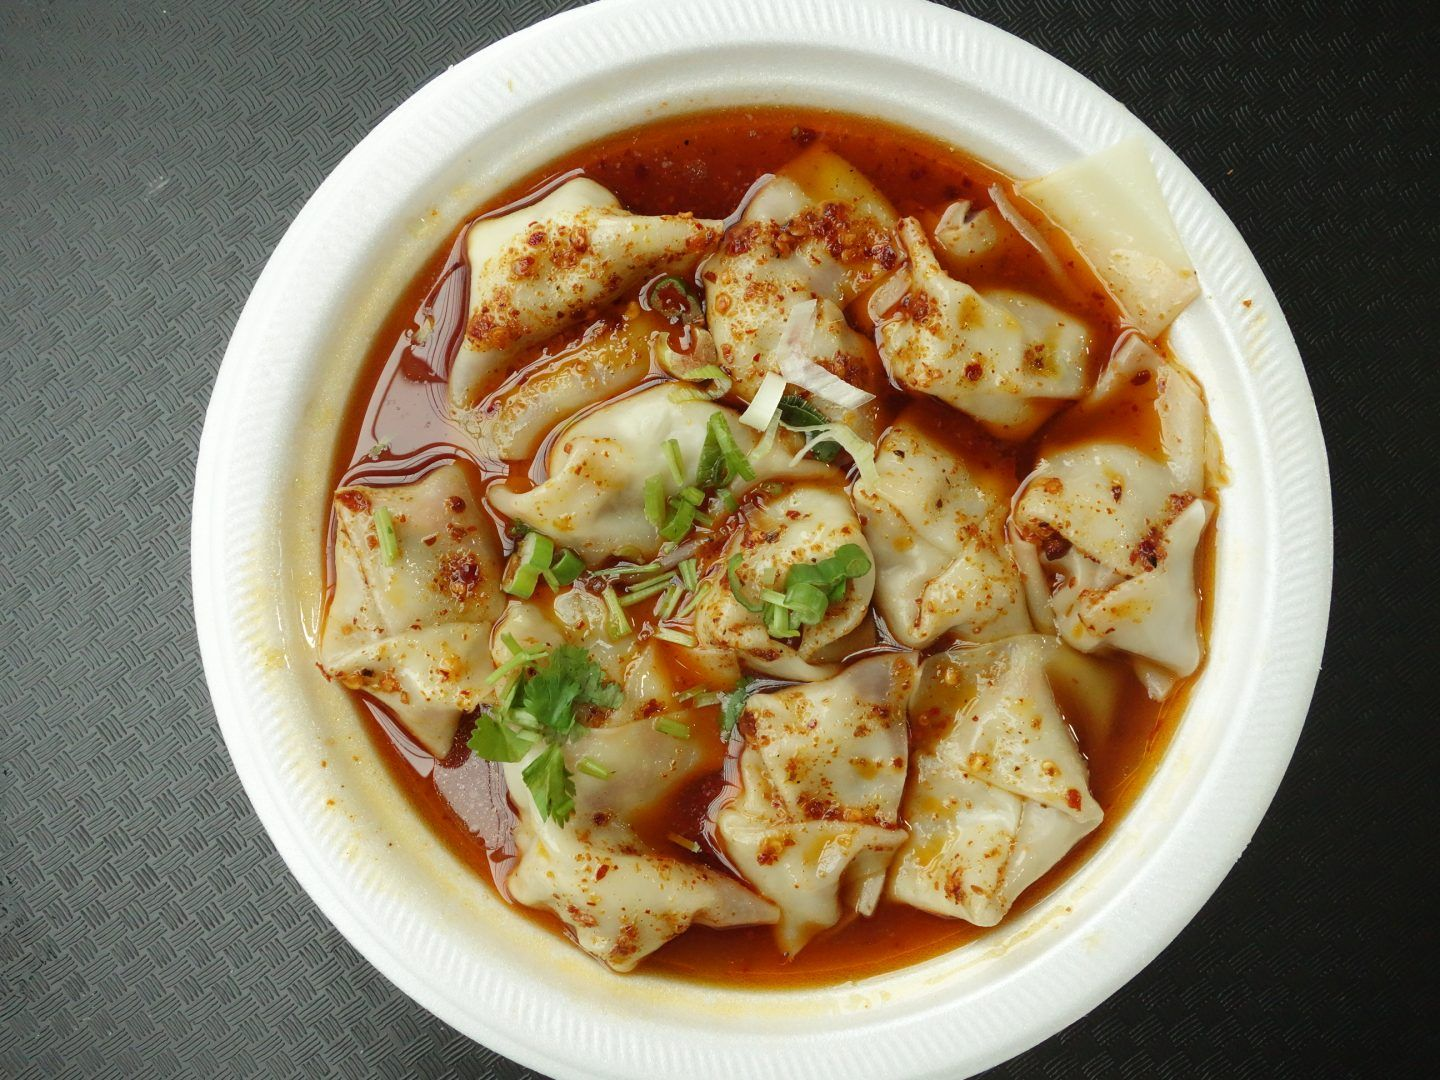 You Ll Find Some Of The Best Chinese Food Anywhere Just Outside Vancouver Best Chinese Food Vancouver Food Food